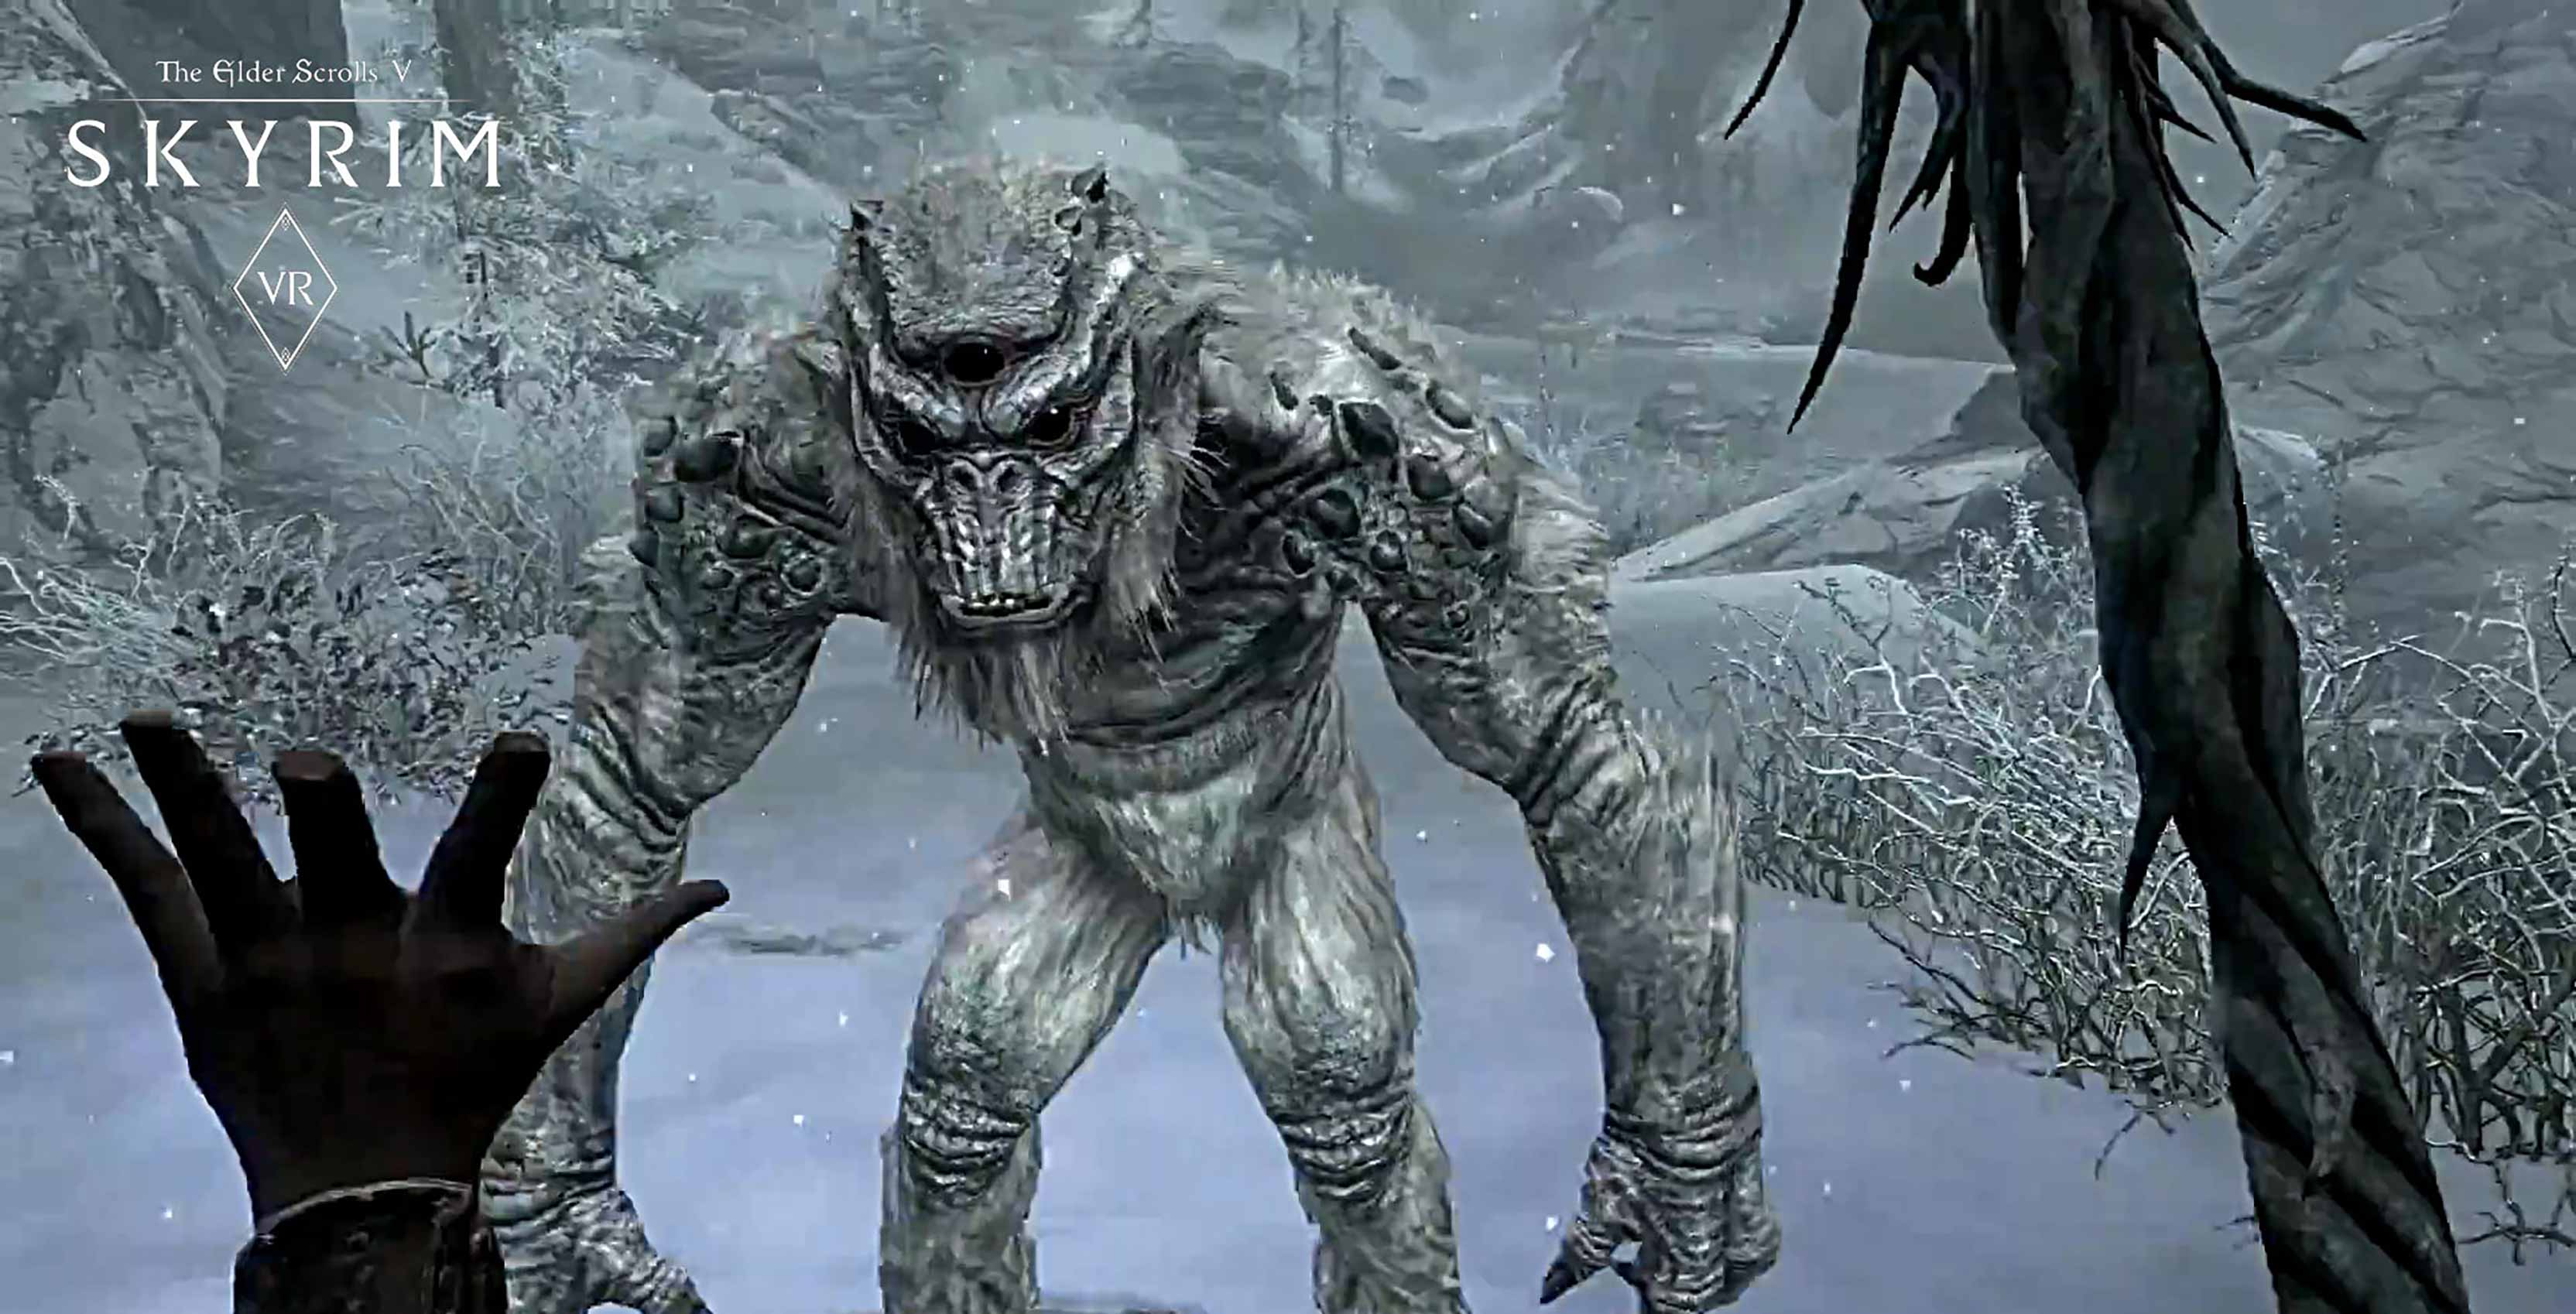 The Elder Scrolls V: Skyrim VR -- Experience the aging RPG